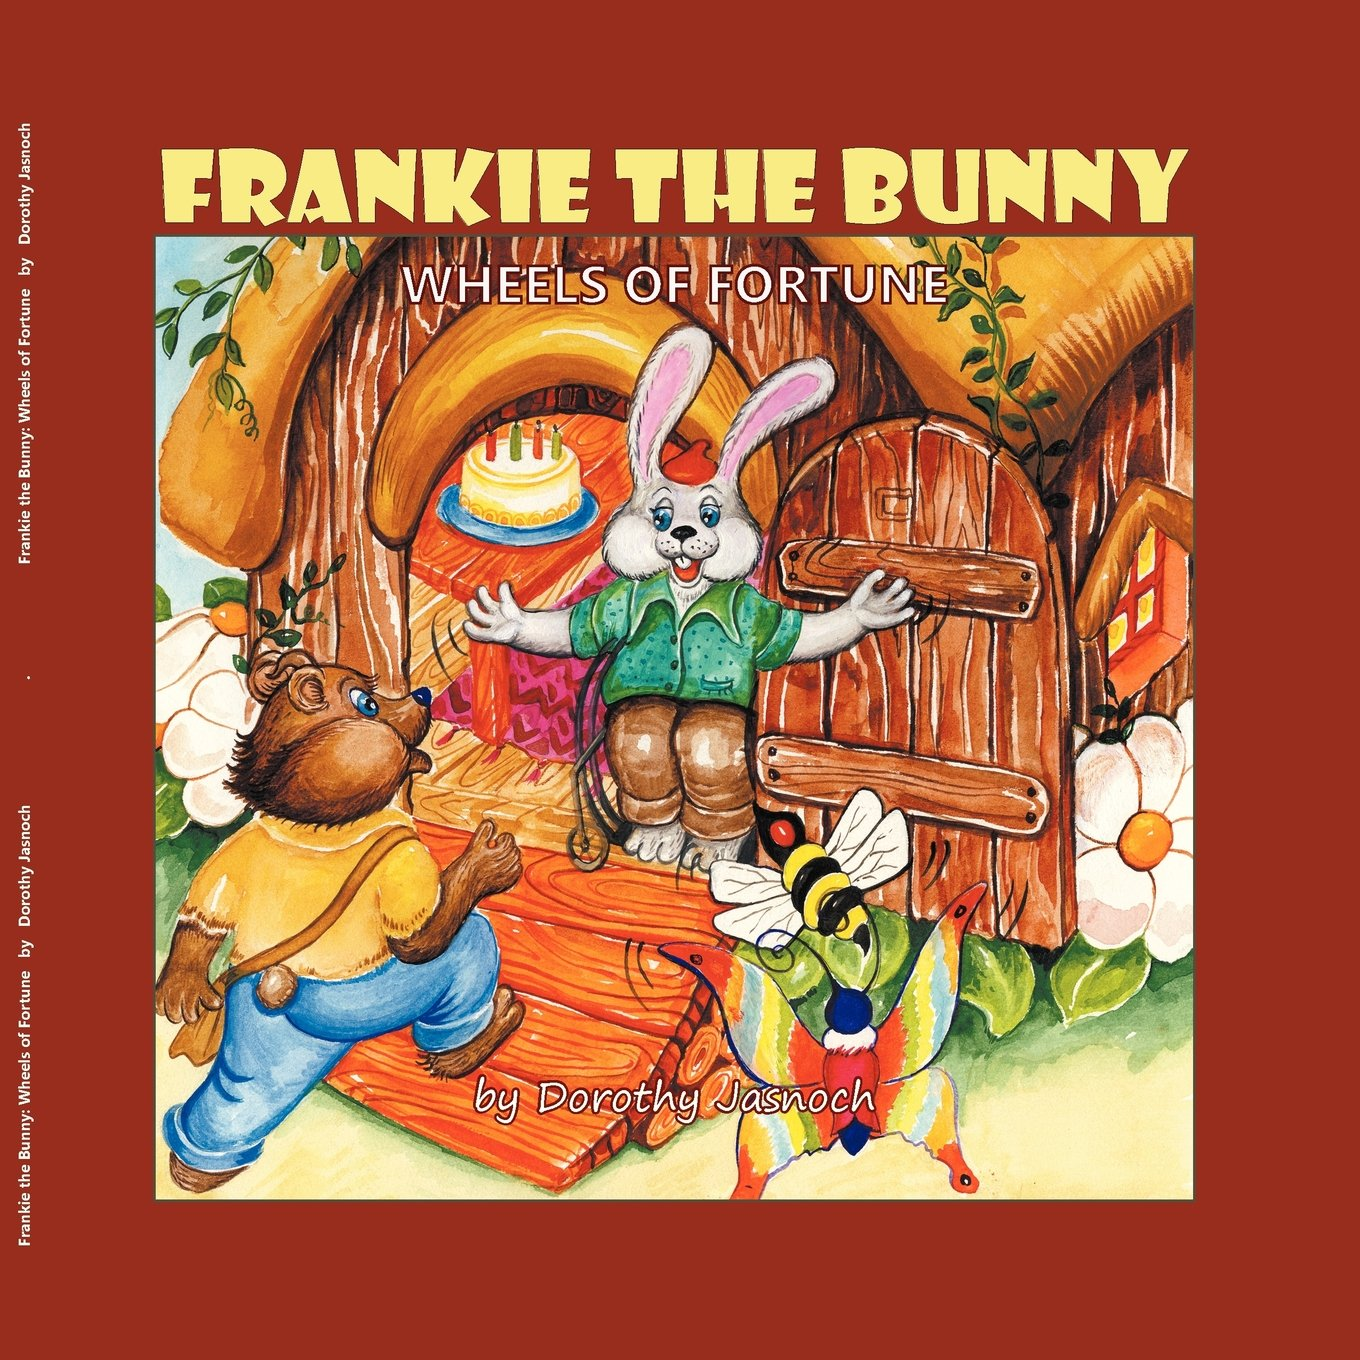 Frankie the Bunny Wheels of Fortune